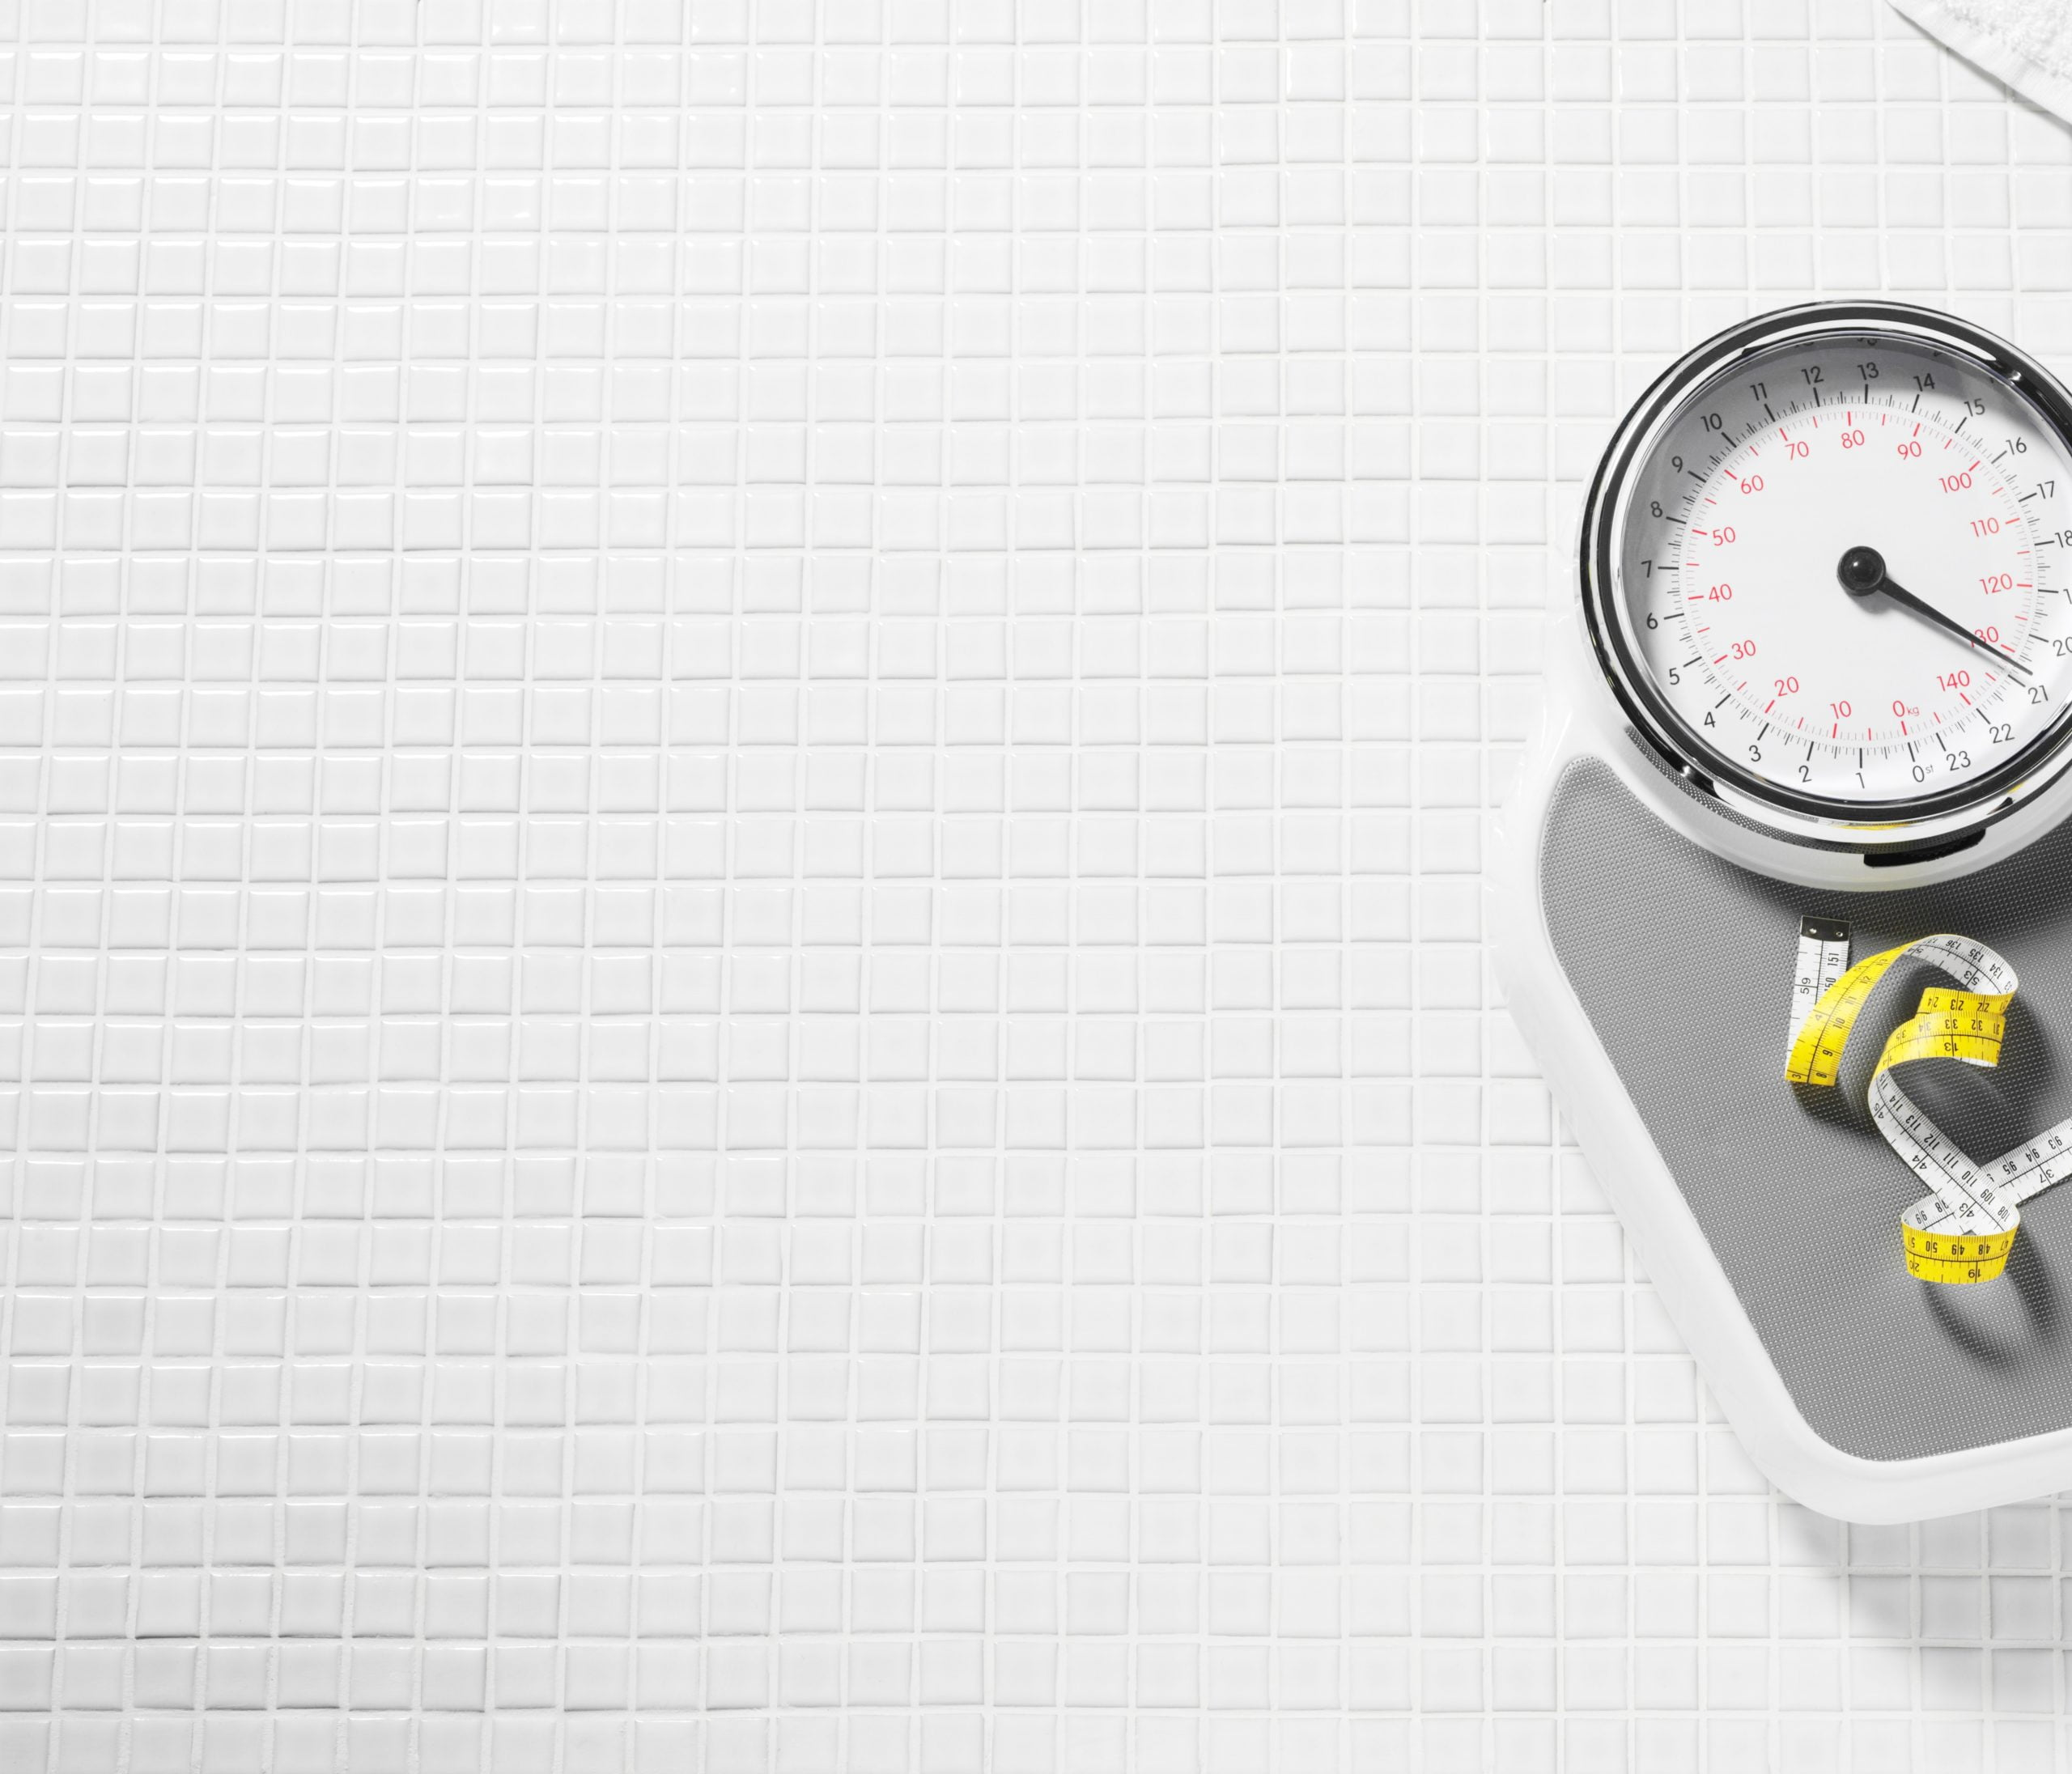 Don't suffer from gaining weight! Here are two routines you can do from home